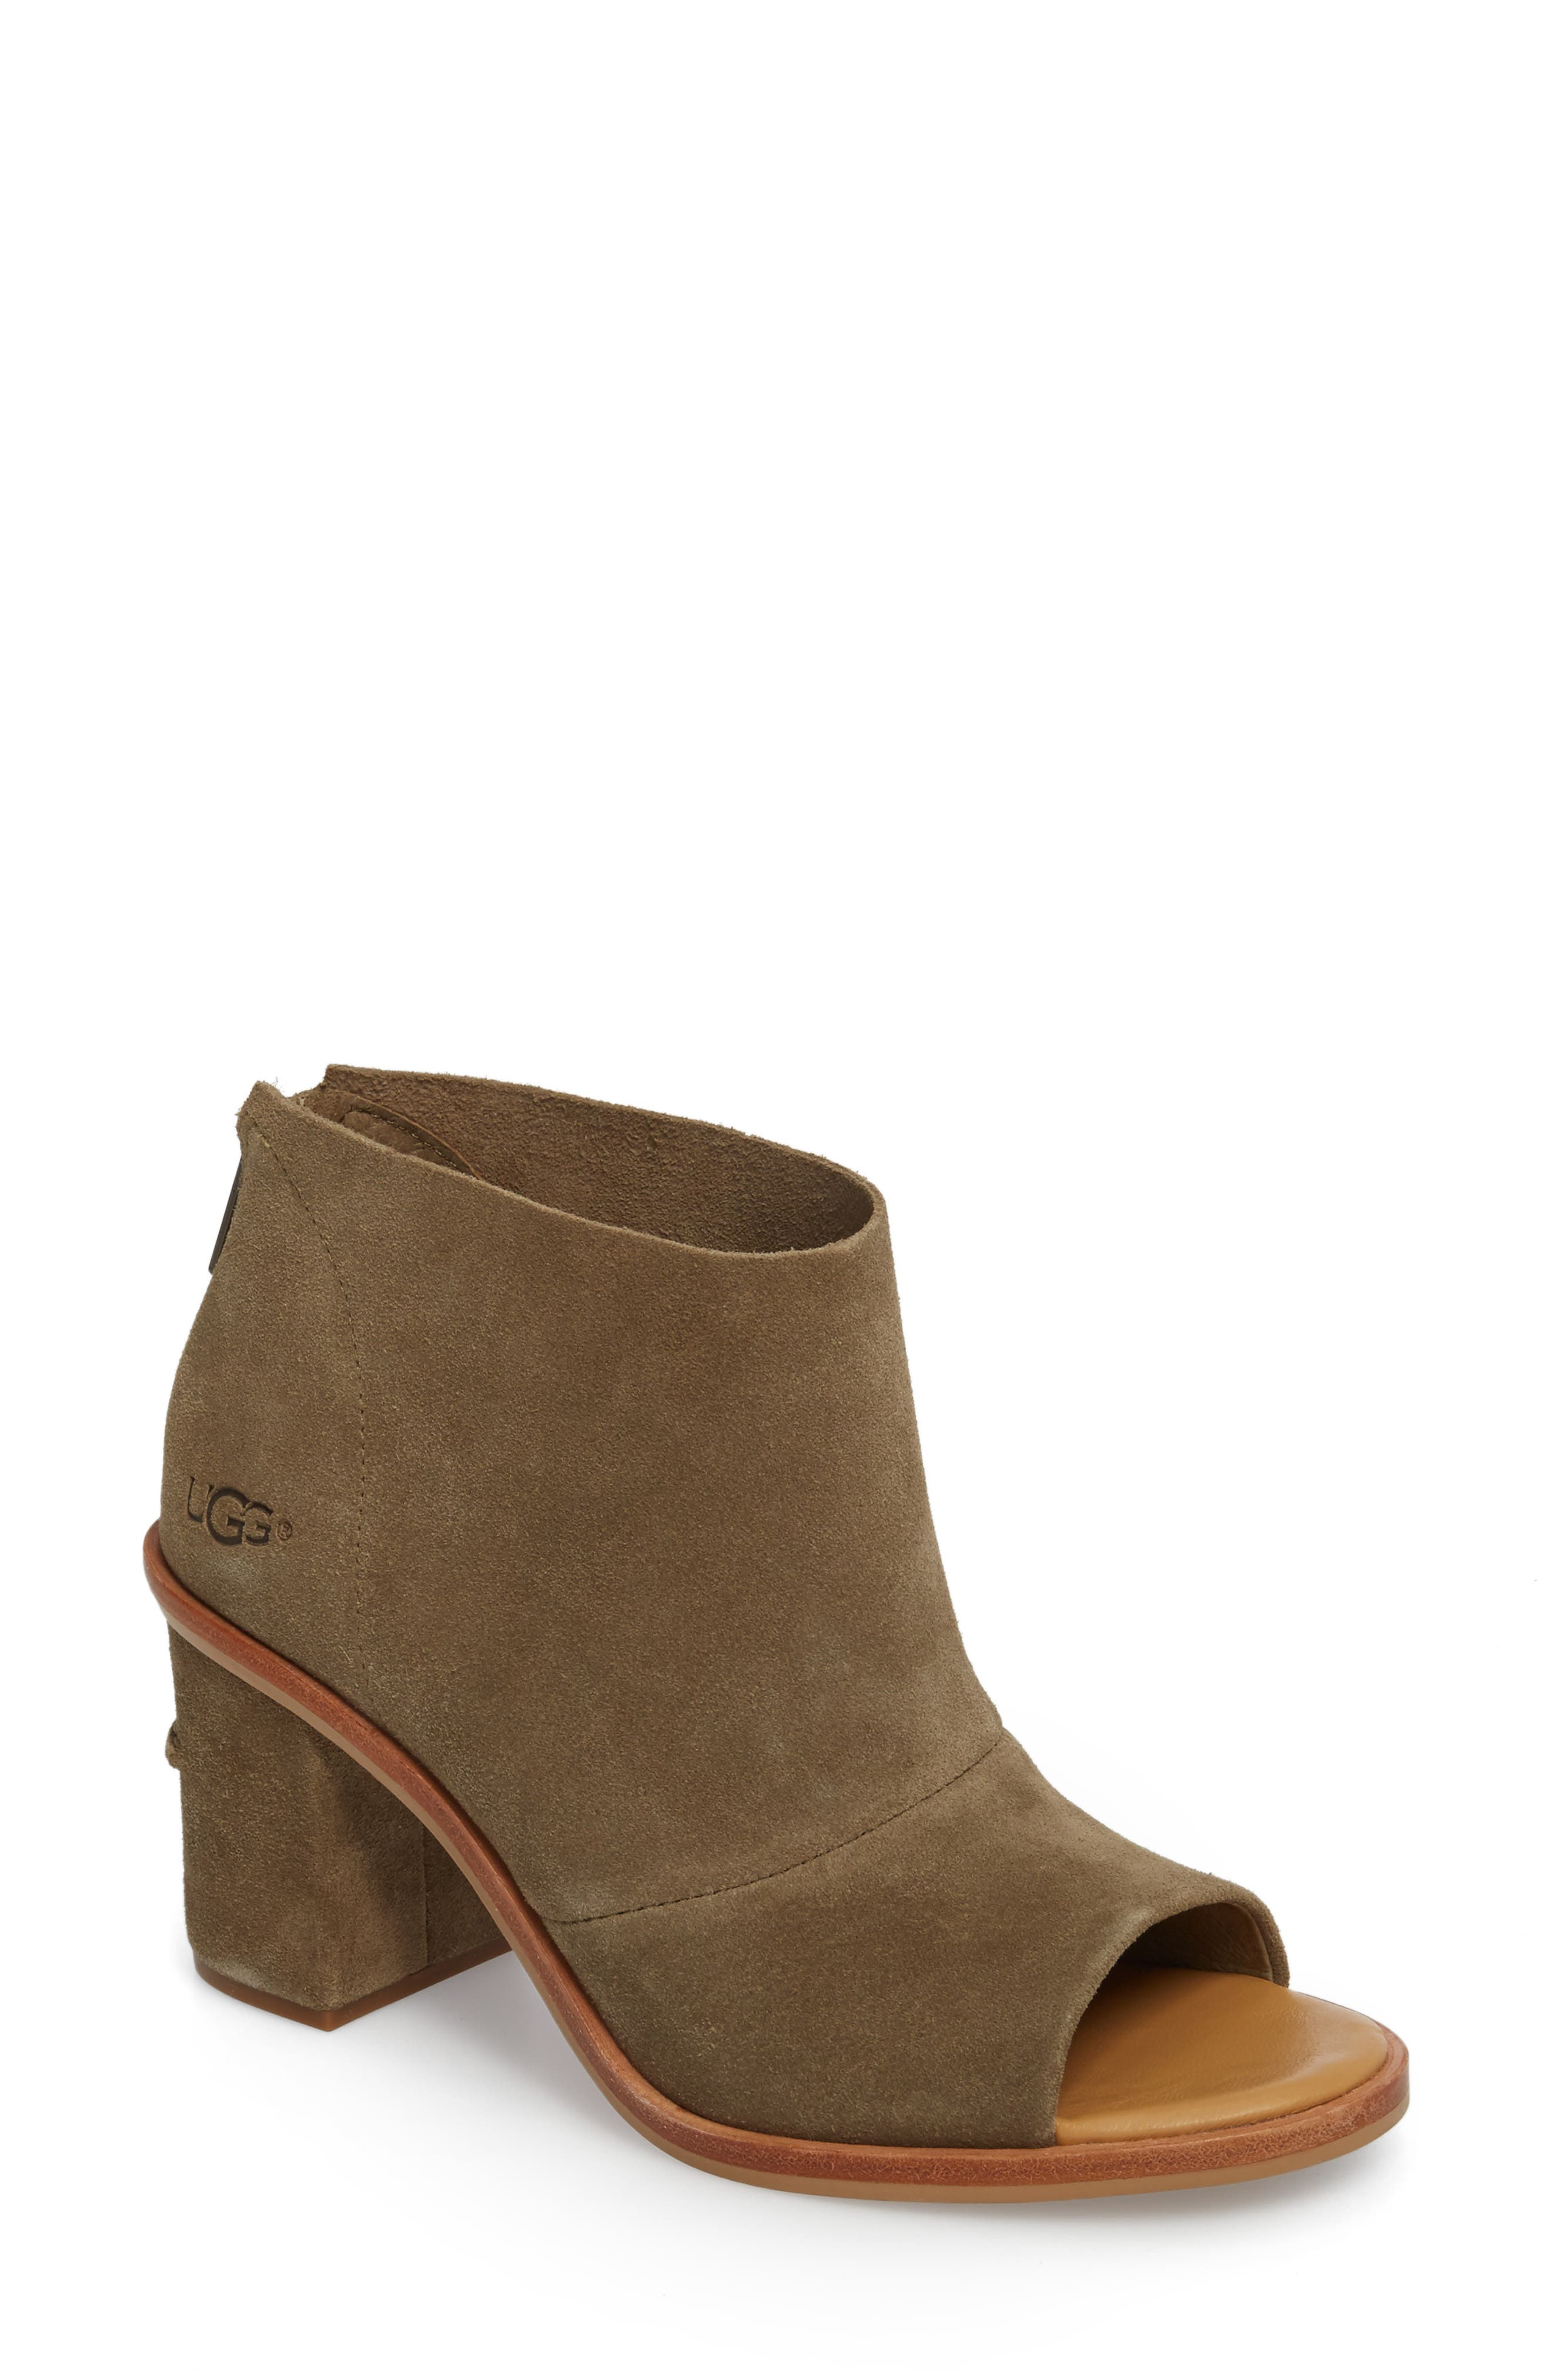 Ginger Peep Toe Bootie,                             Main thumbnail 1, color,                             Apple Green Suede